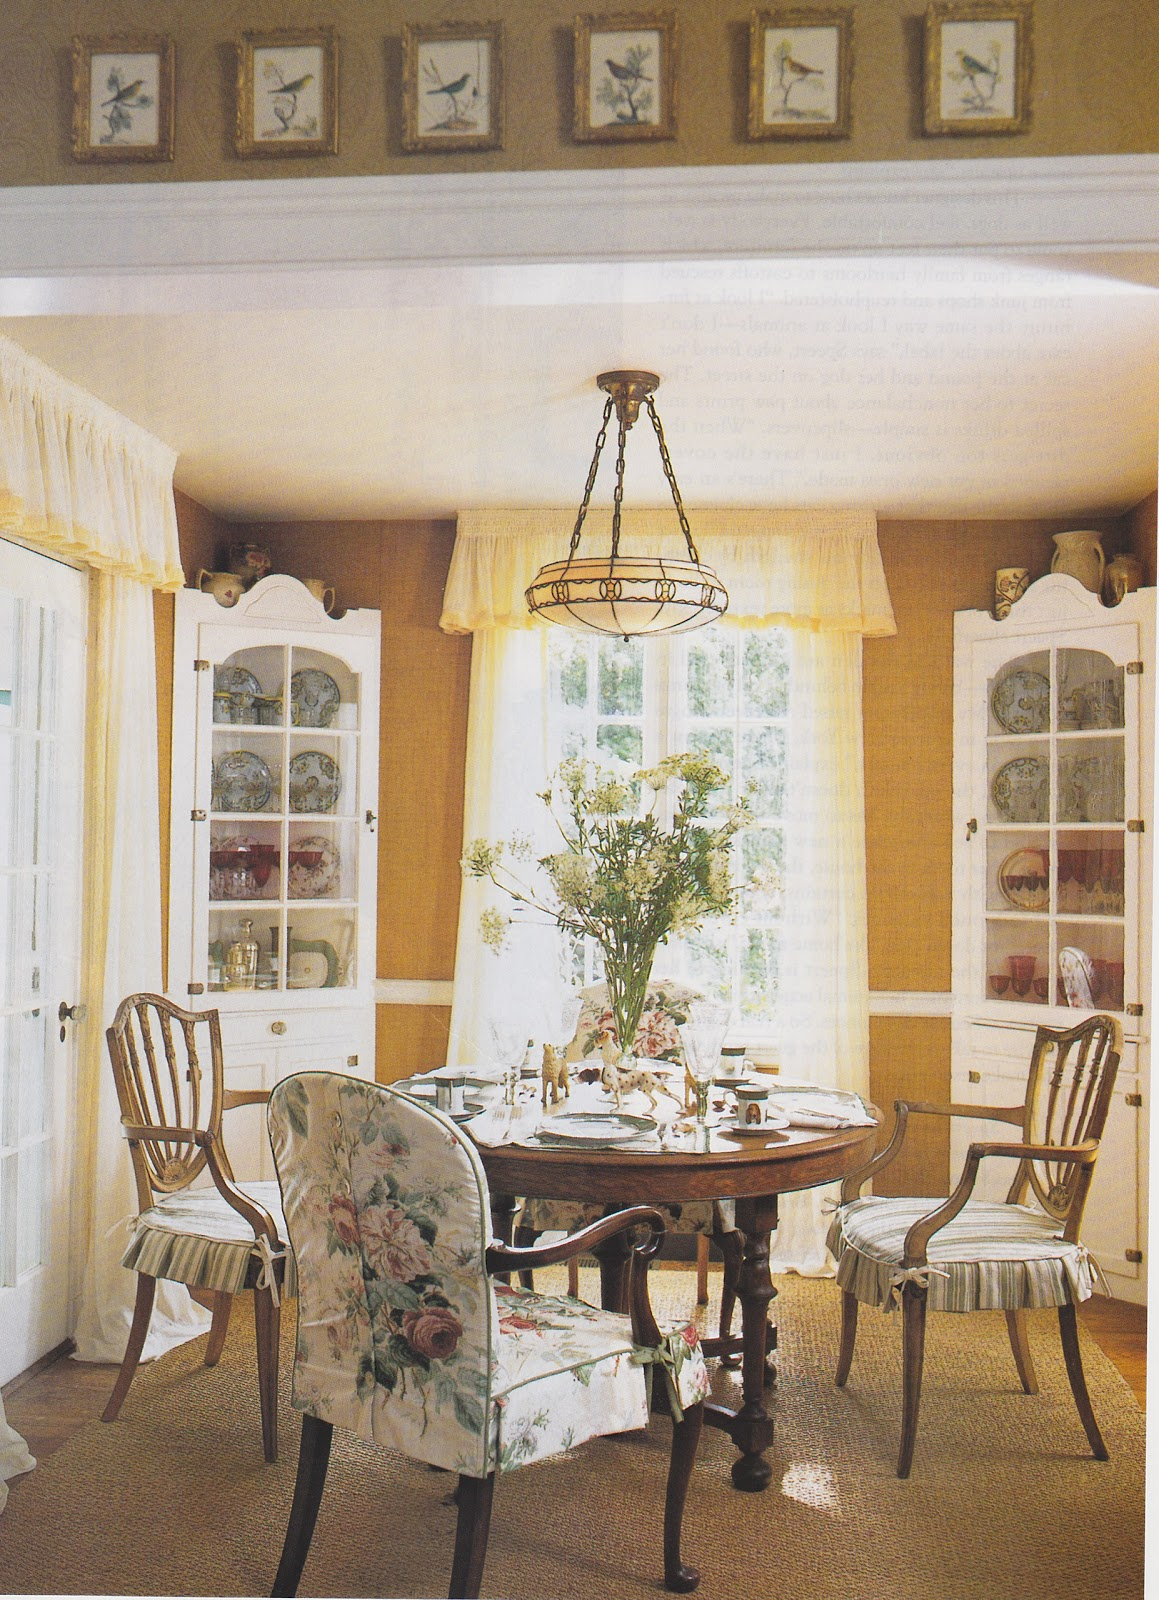 Betsy Speert's Blog: My Cottage Dining Room